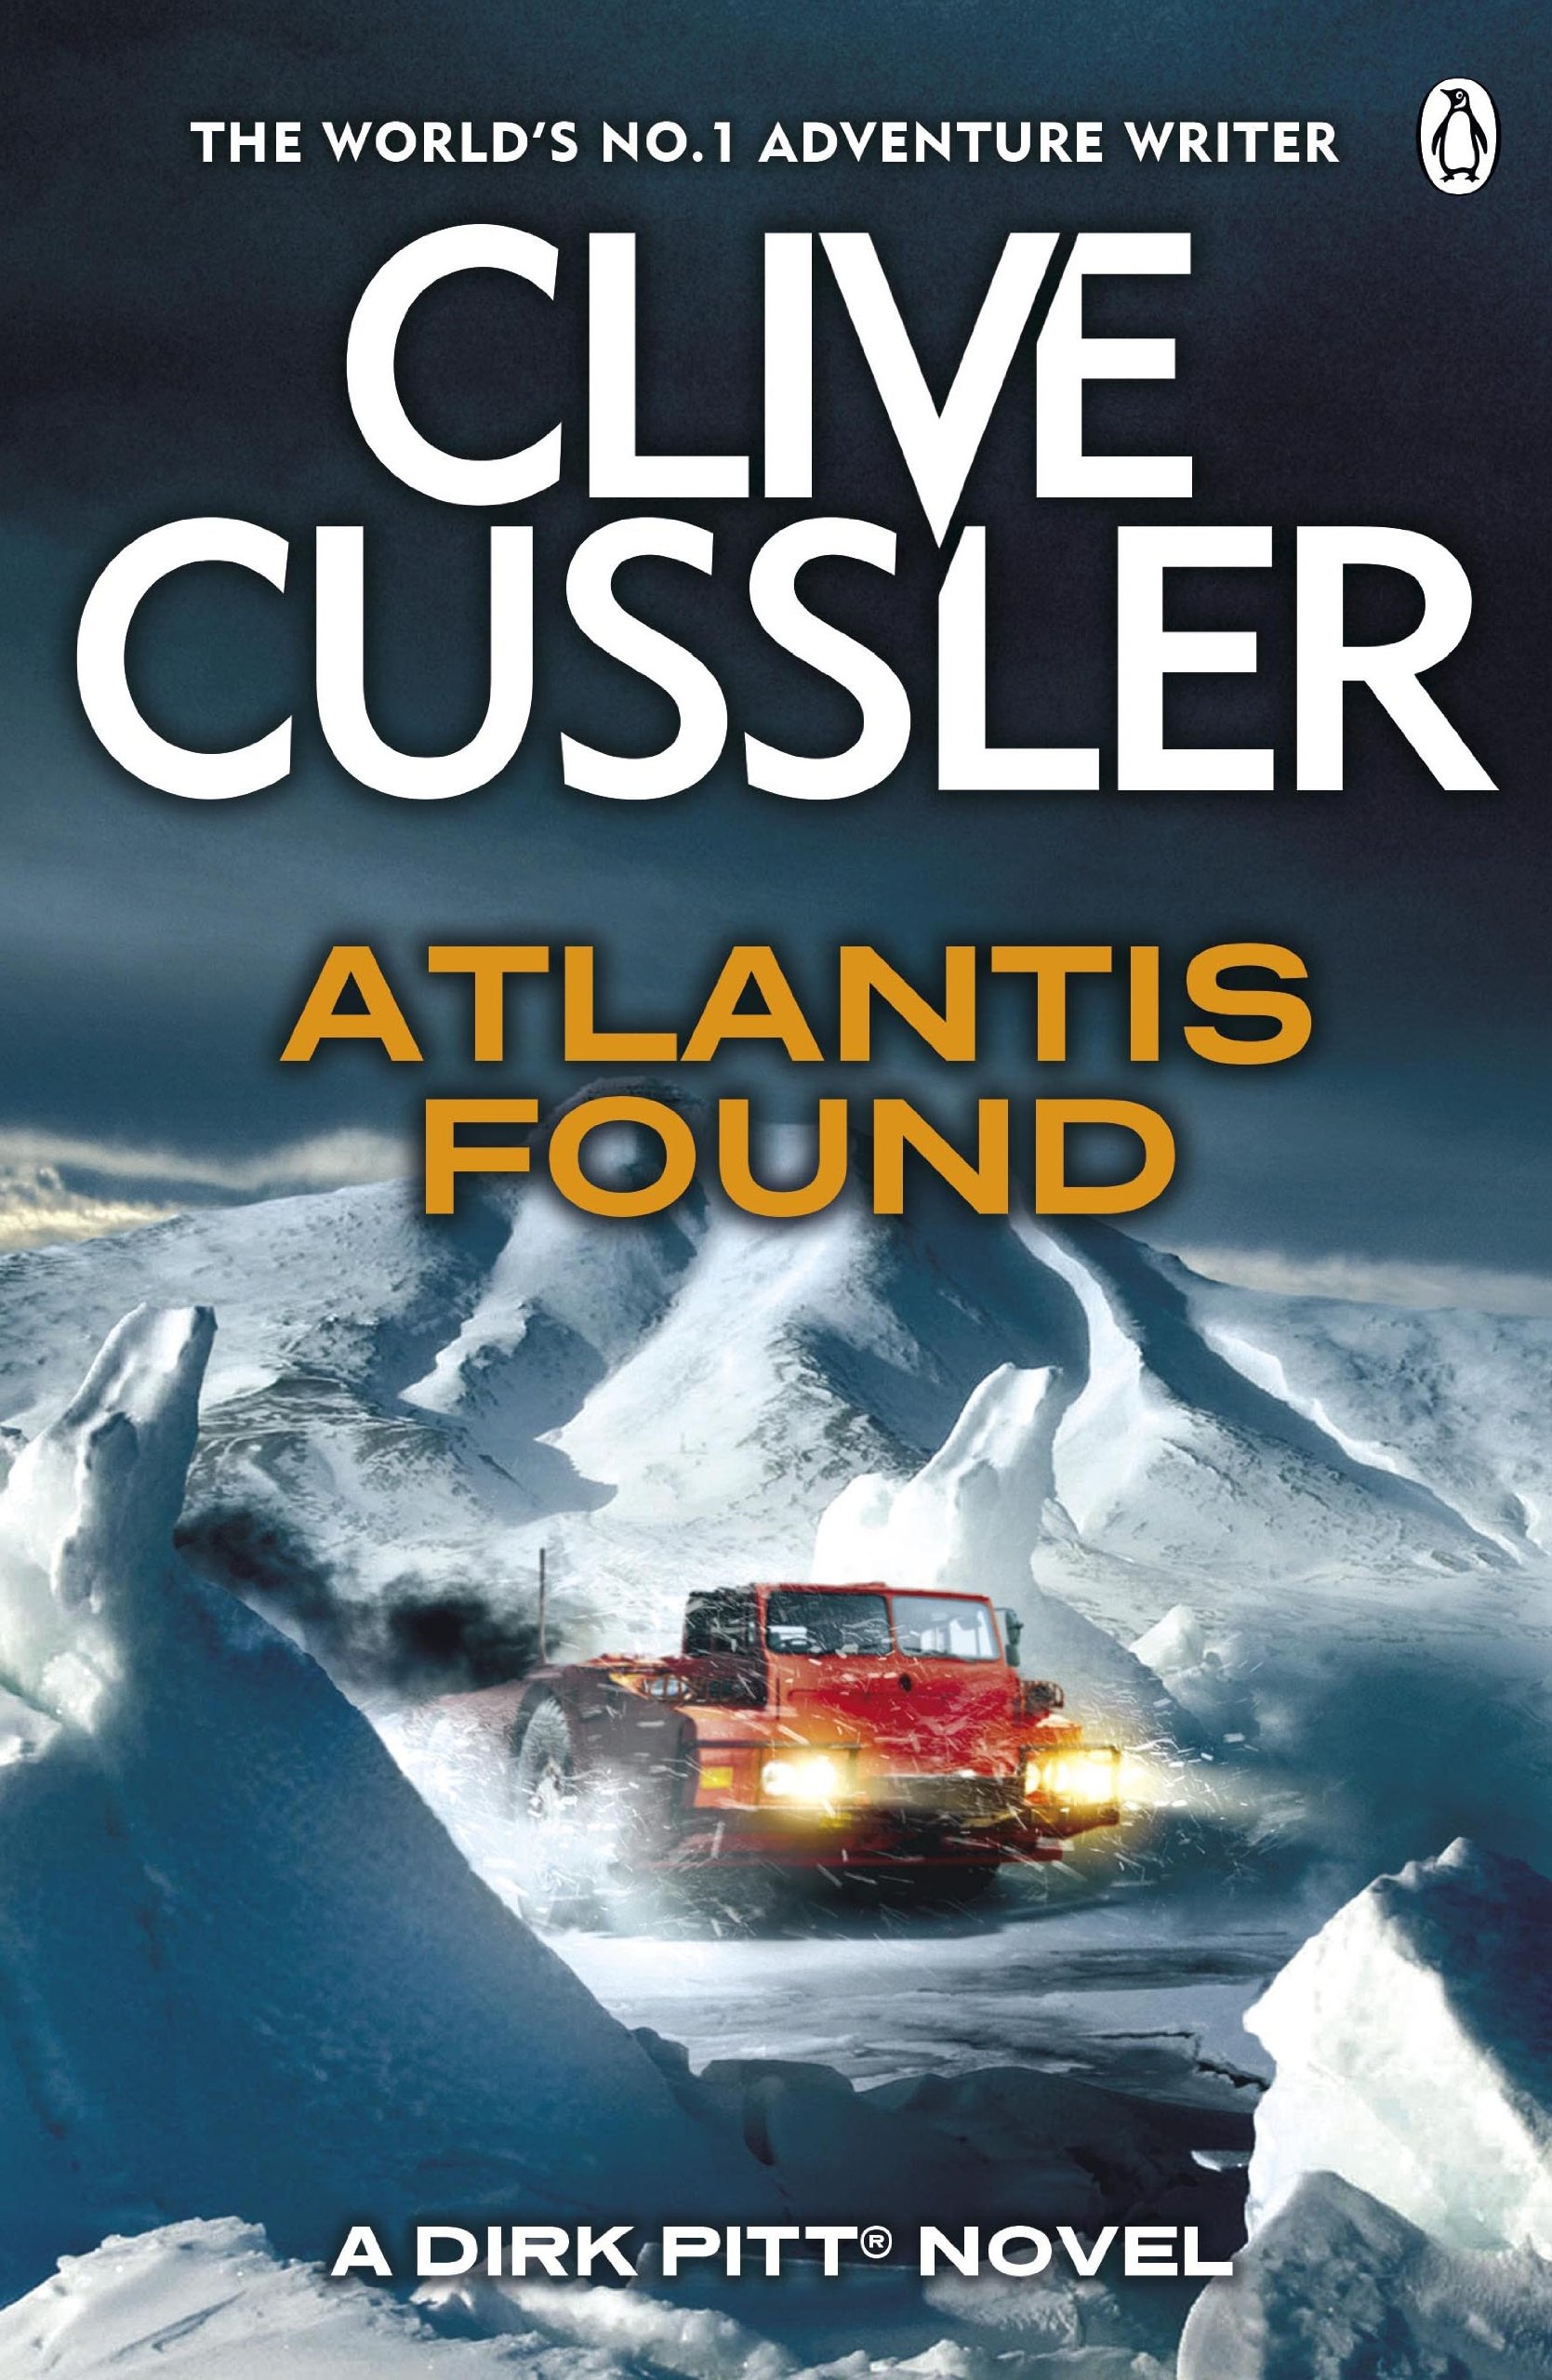 Book Cover of Atlantis Found